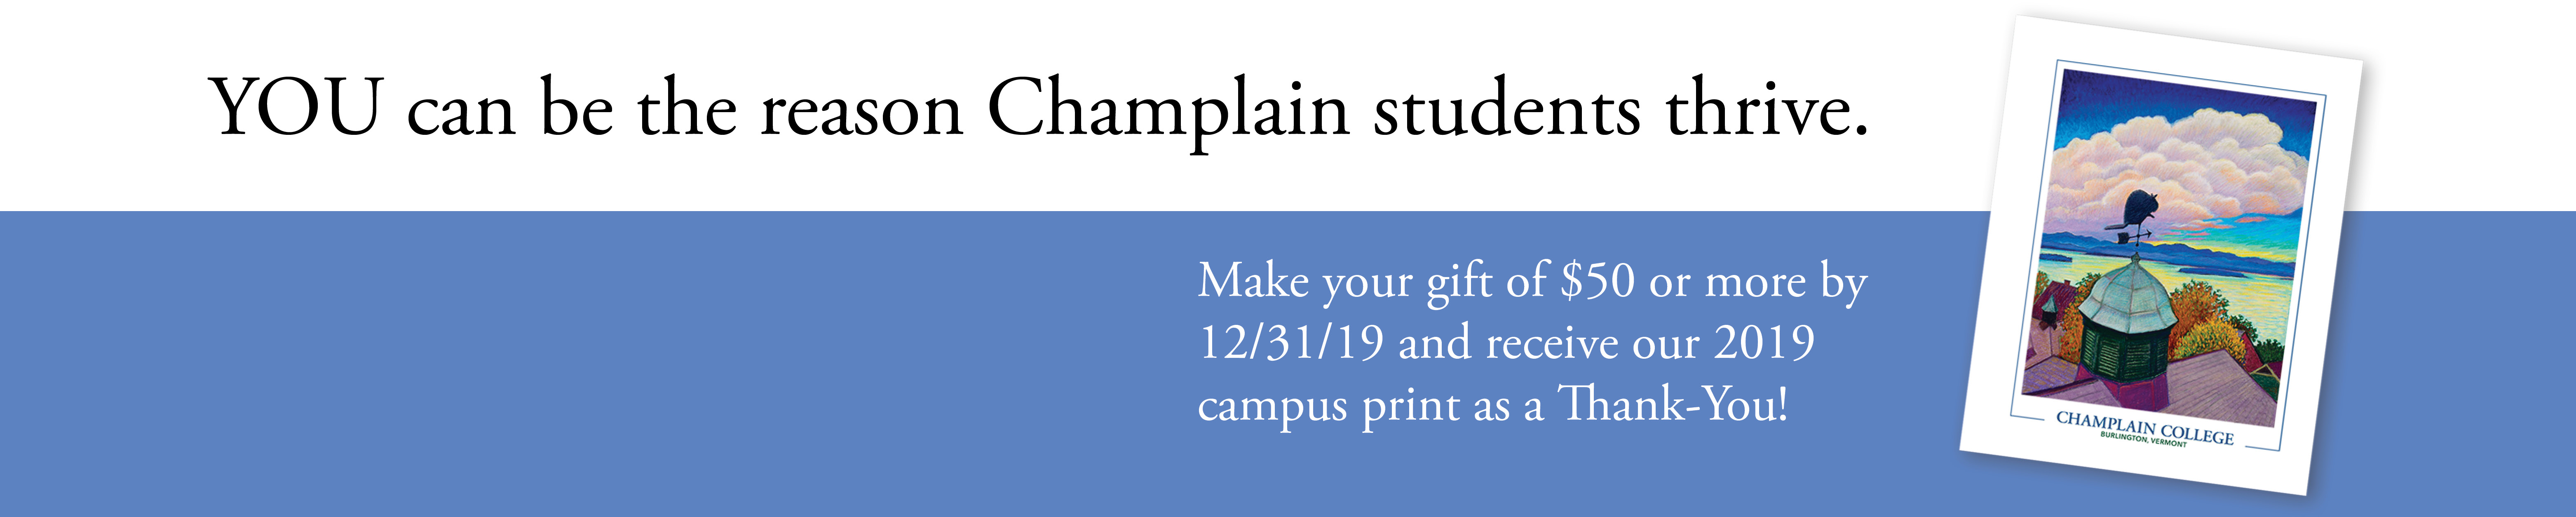 Make your gift by 12/31/2019!